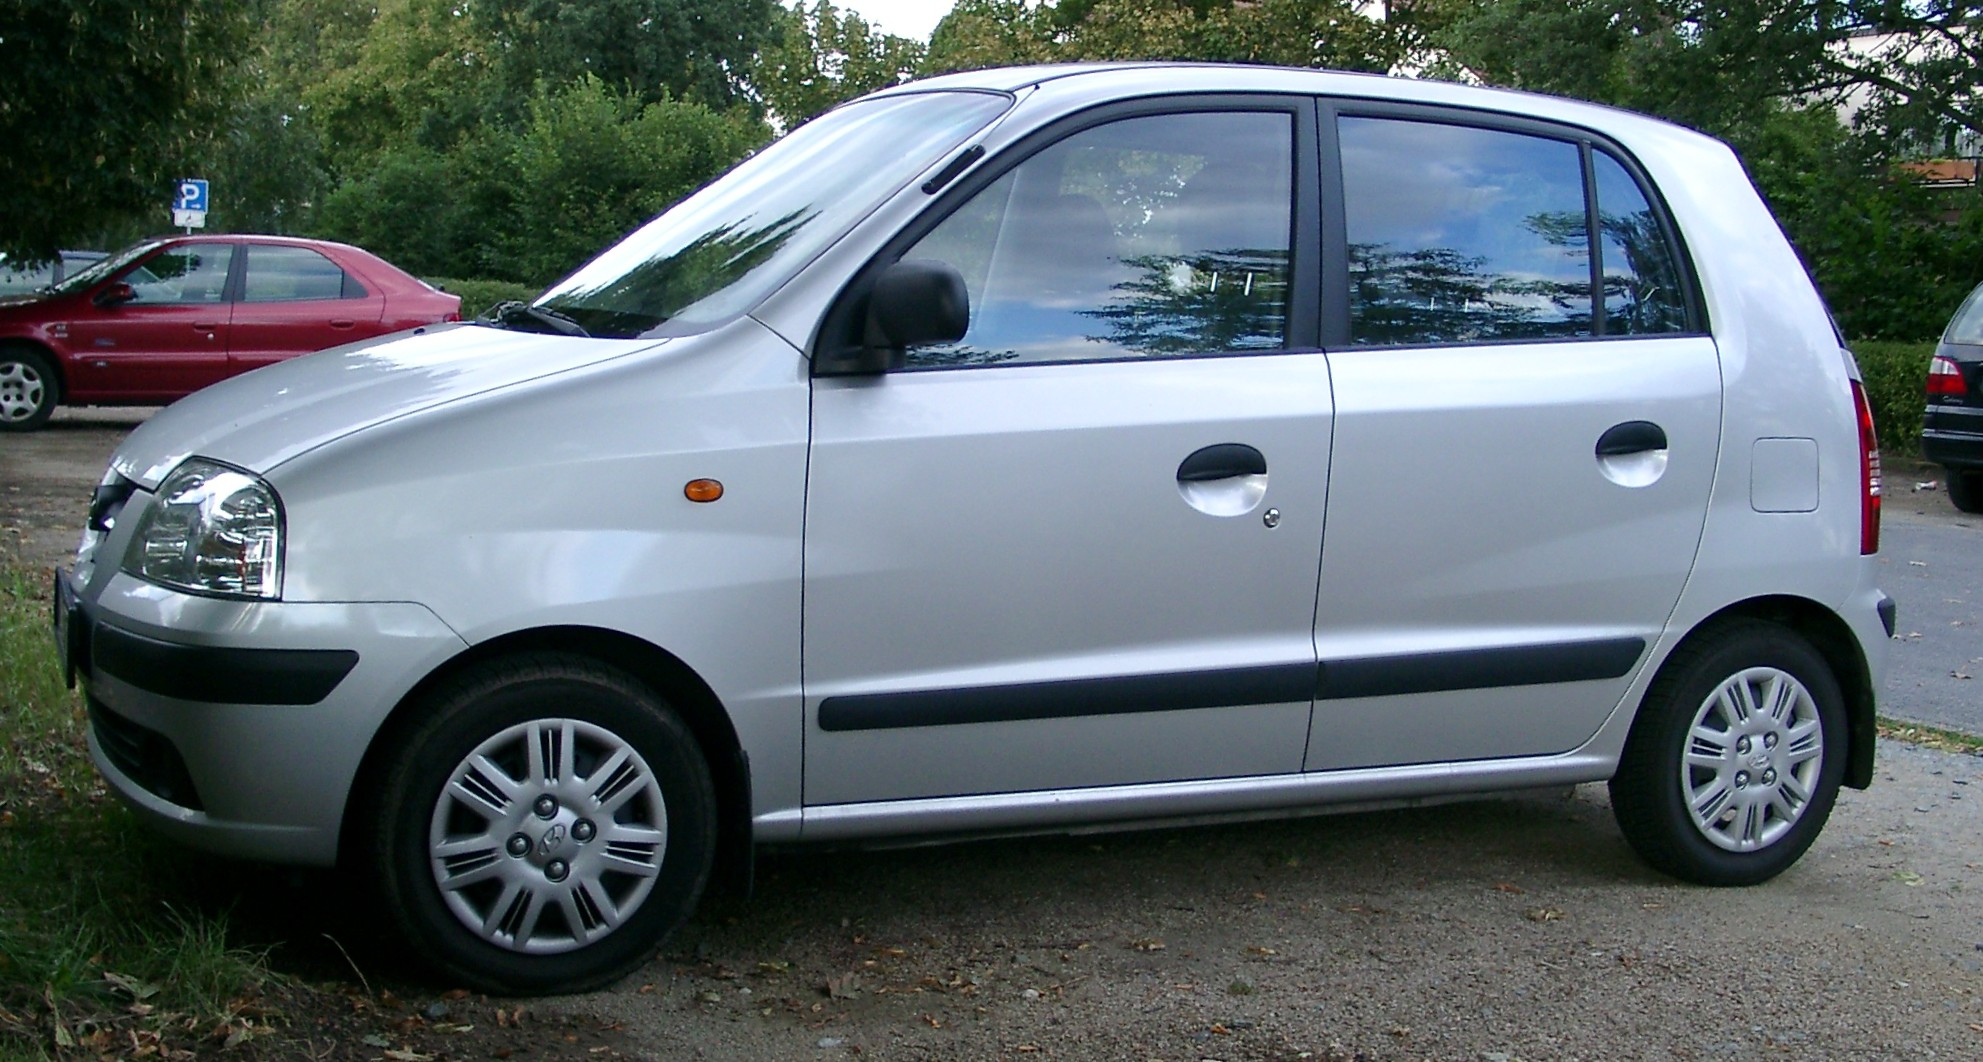 Who Owns Mazda >> Hyundai Atos 2012: Review, Amazing Pictures and Images – Look at the car